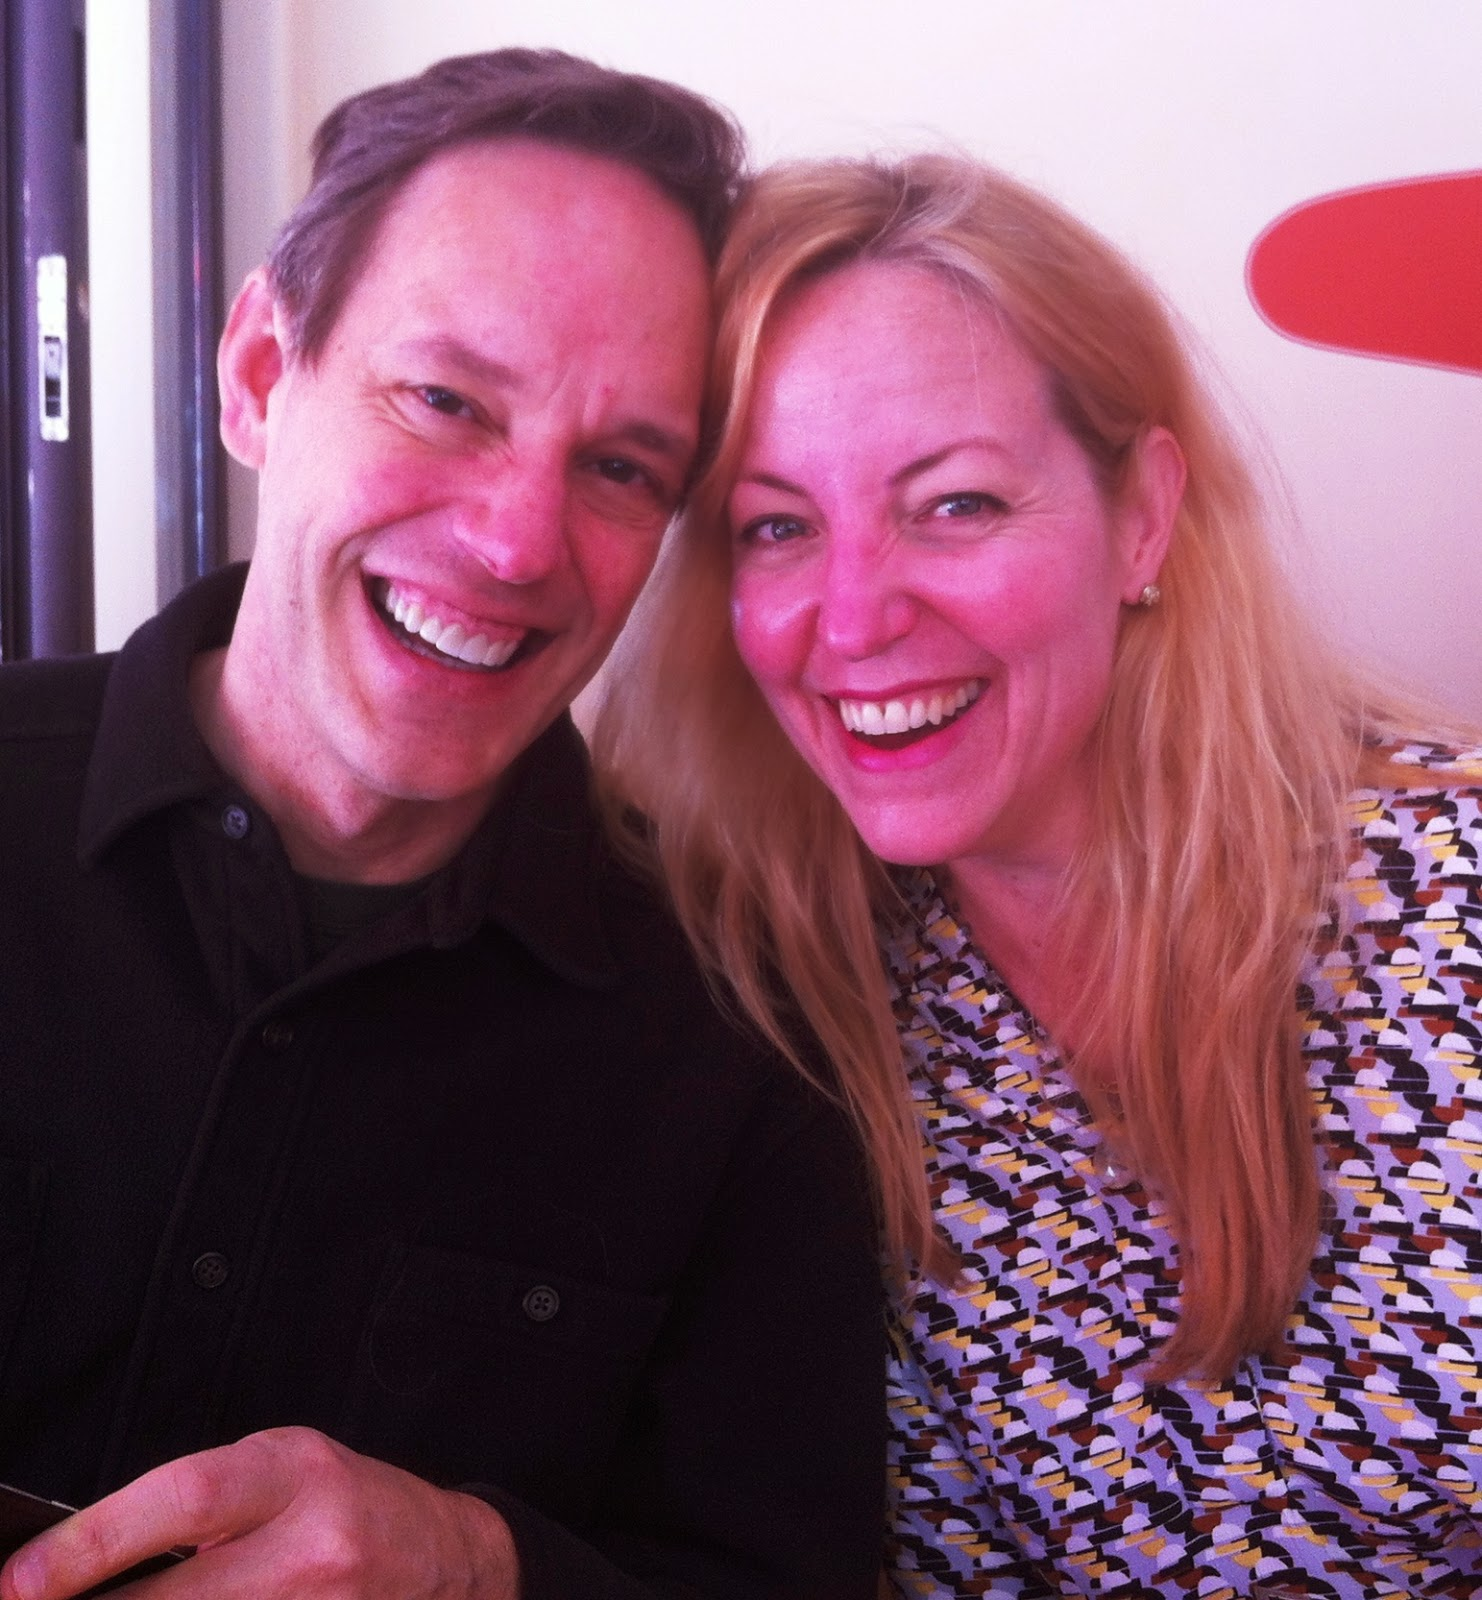 Composer Jake Heggie (left) and soprano Lise Lindstrom (right) in San Francisco, March 2015